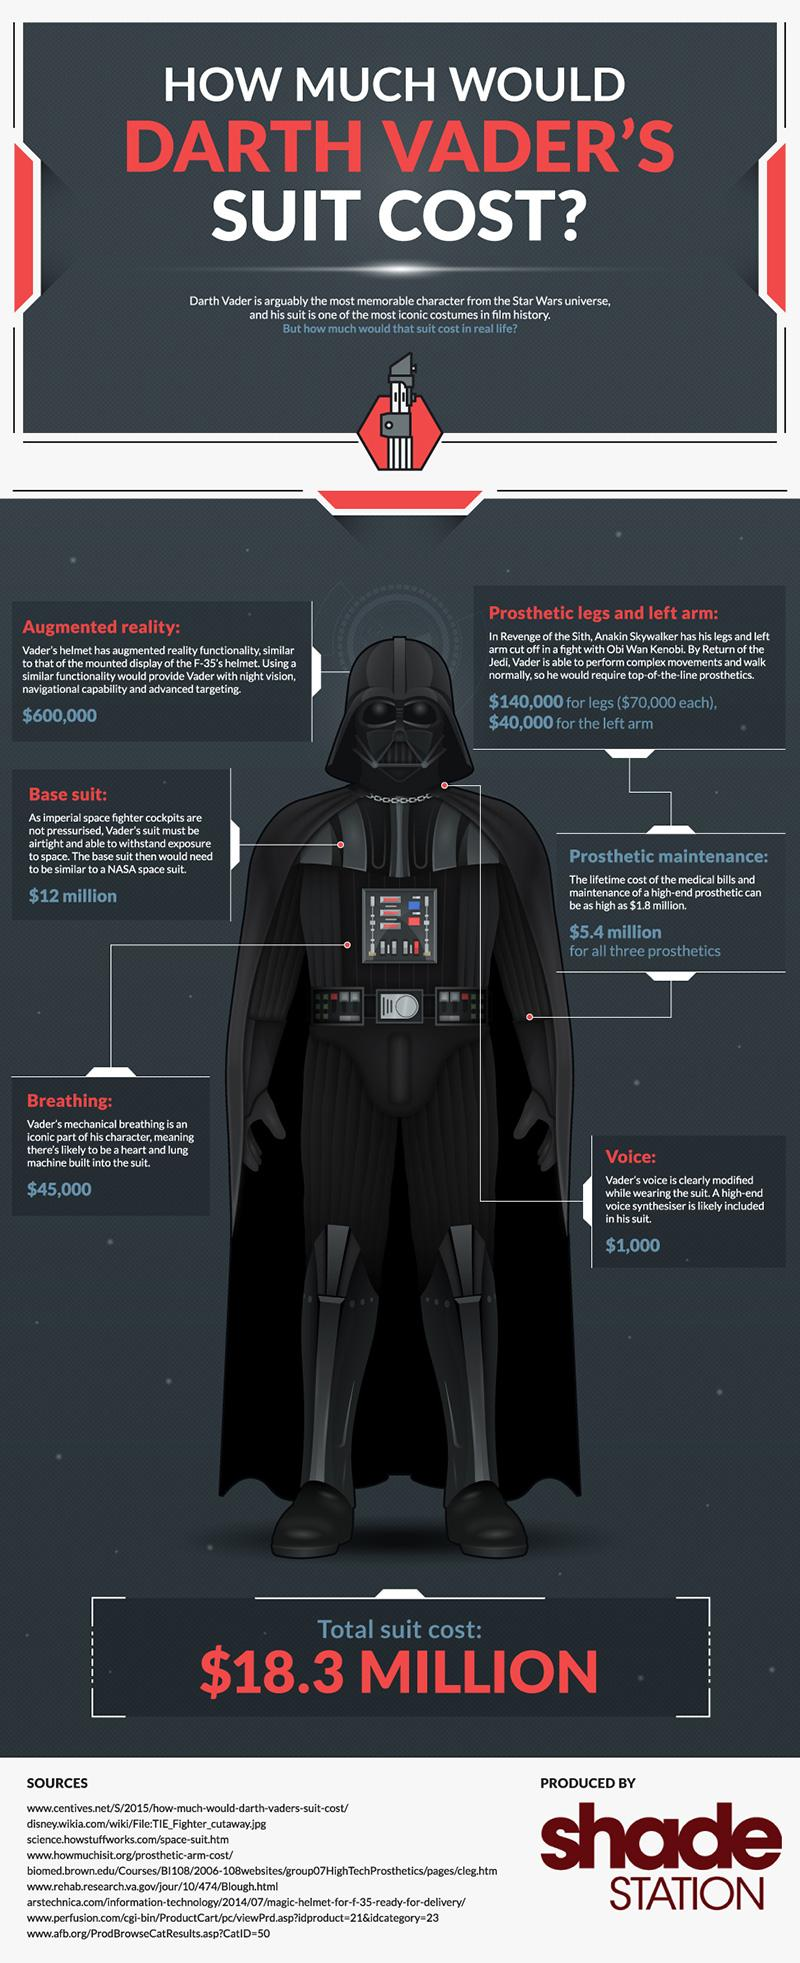 How Much Would Darth Vader's Suit Cost